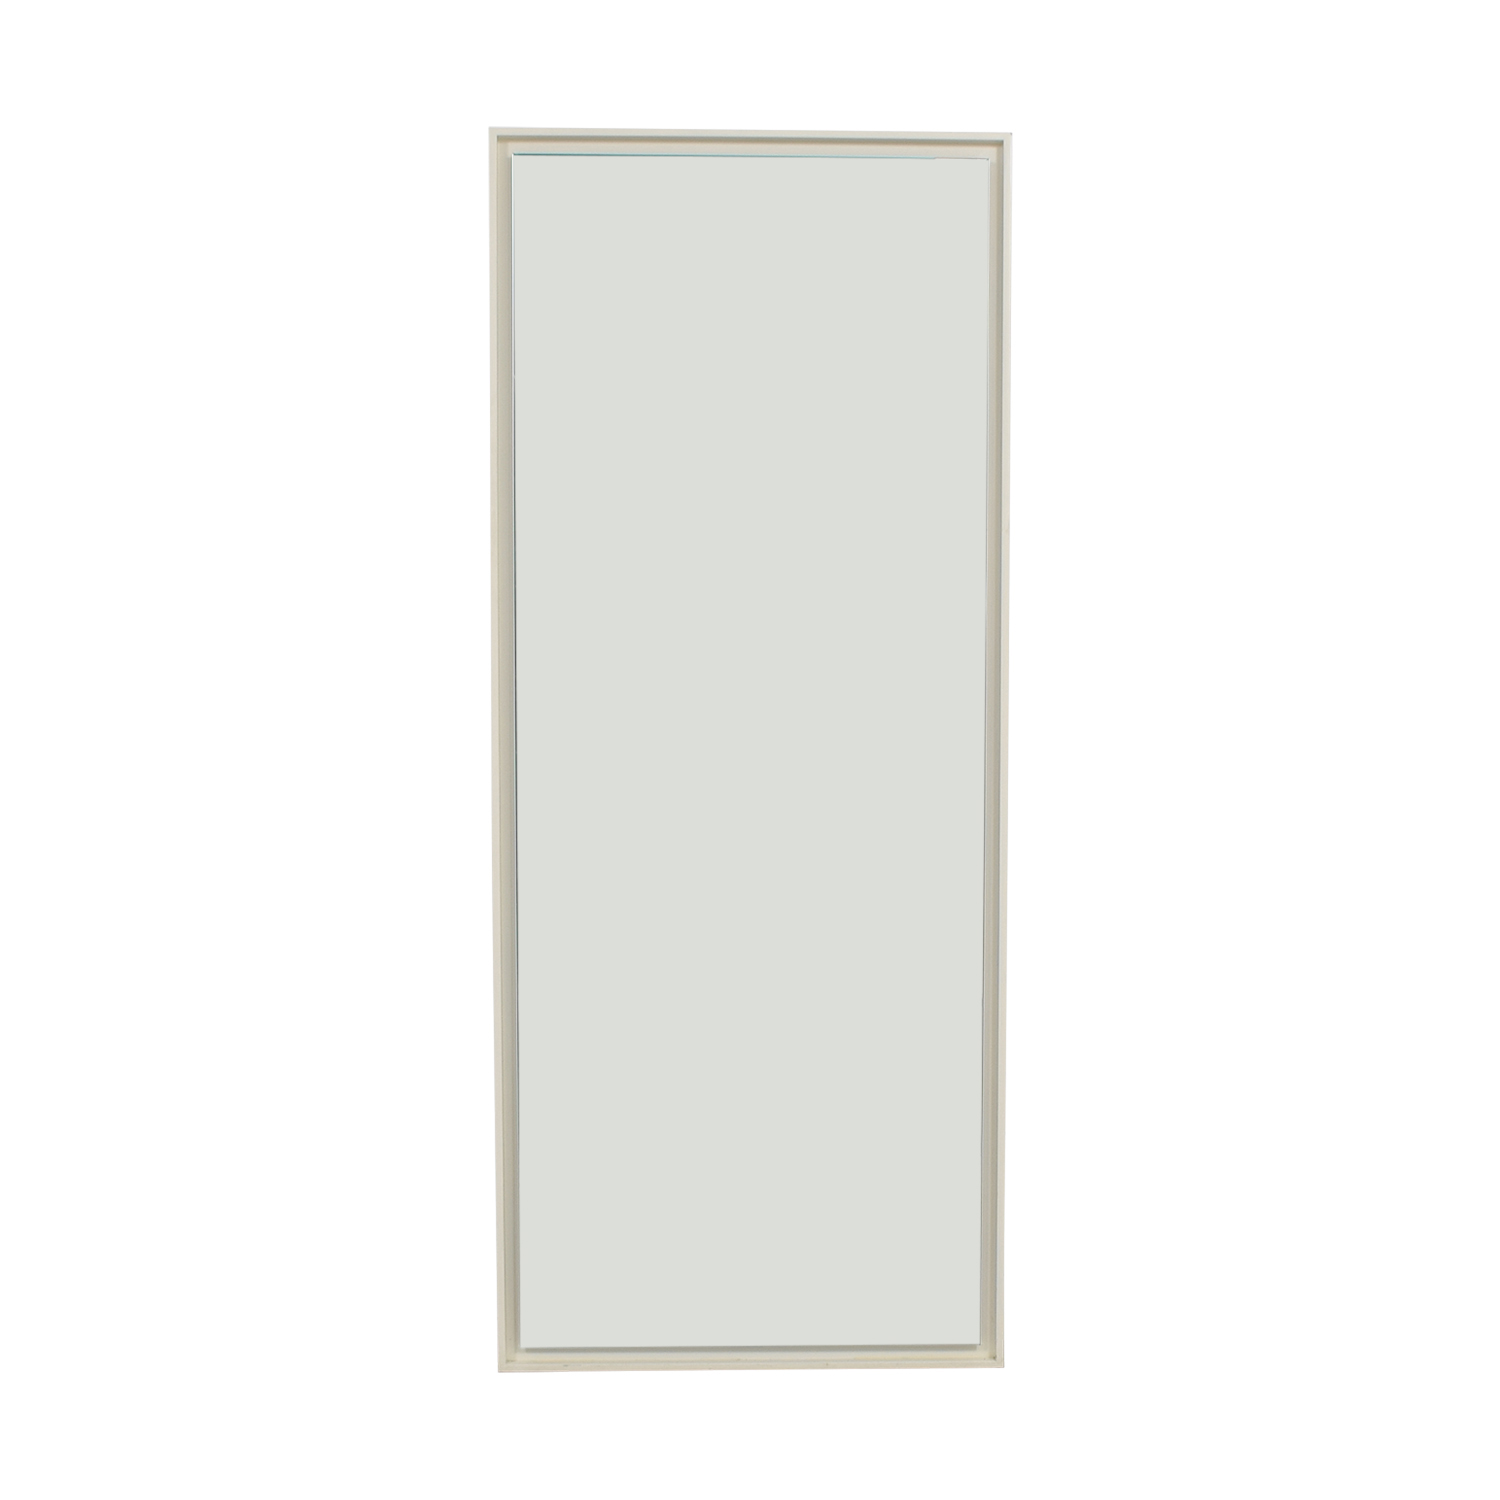 Crate & Barrel Crate & Barrel White Wall Mirror Mirrors